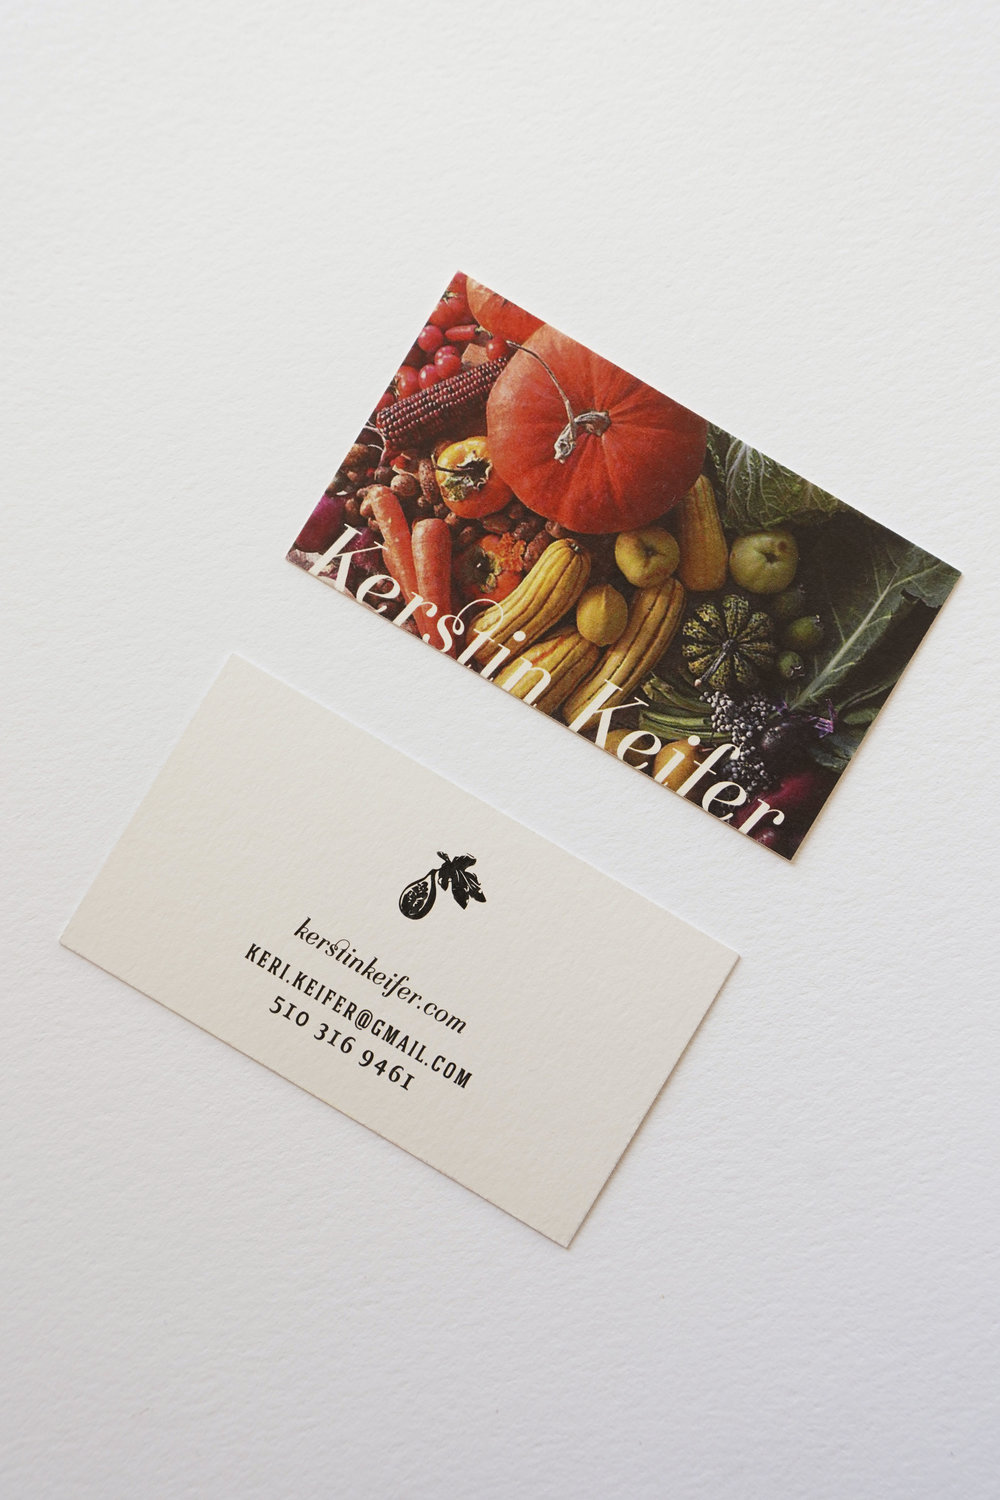 Eva Moon Press updated Keri's business card in 2018 to feature Keri's beautiful photography.